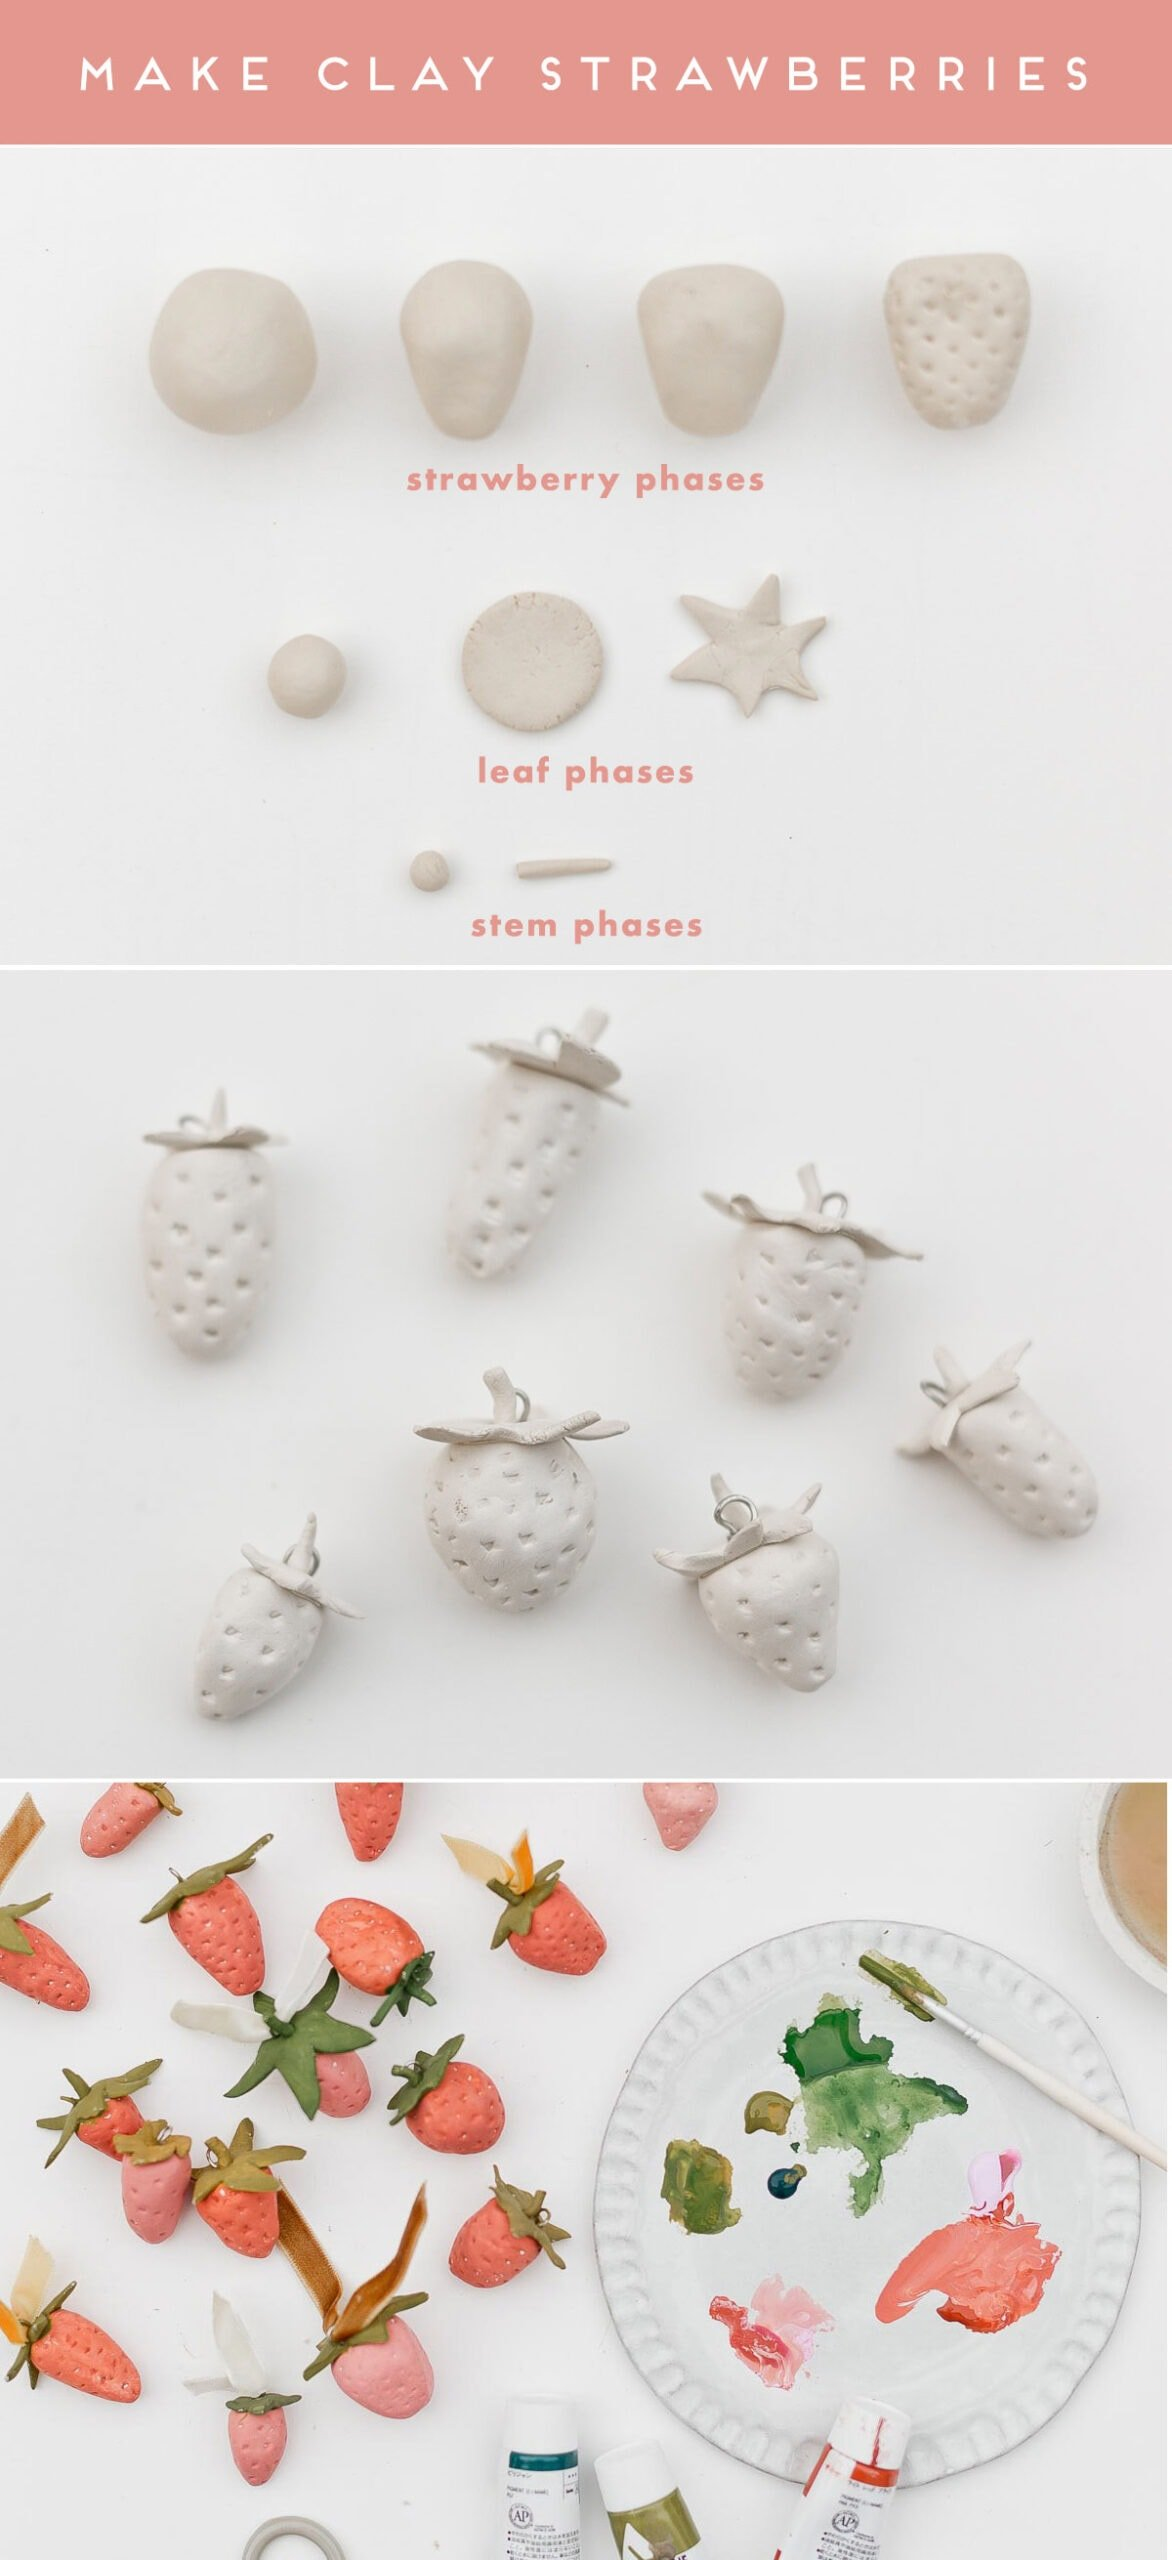 Step by step guide for making clay strawberries.